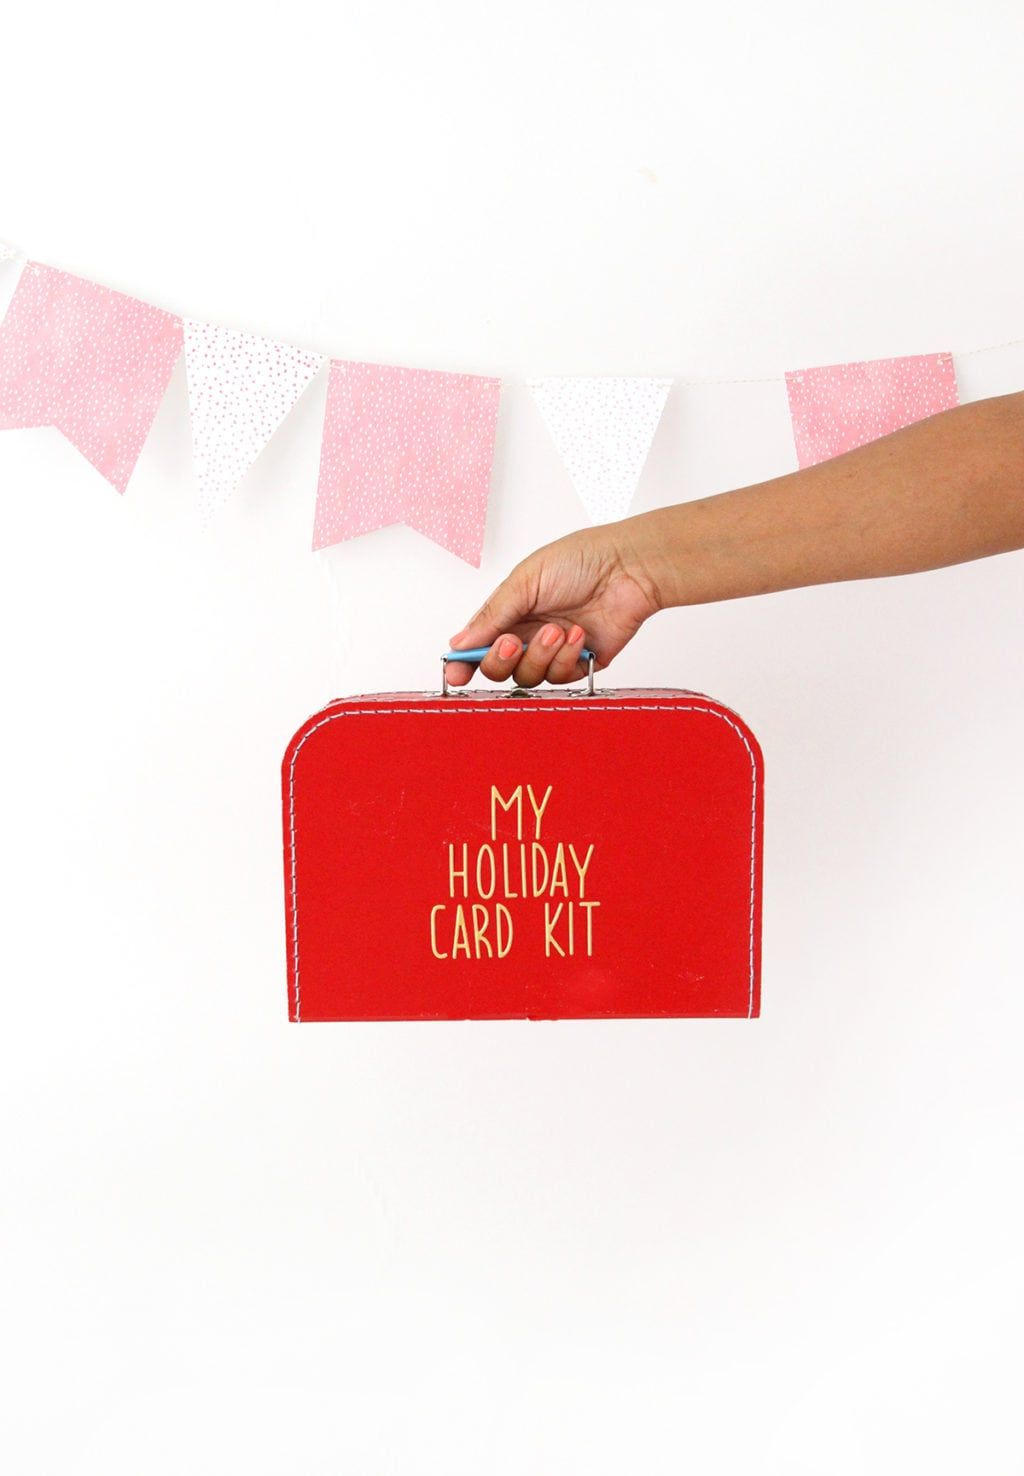 Make Your Own Holiday Card Kit (With images) | Diy holiday kits, Card kit, Diy holiday cards